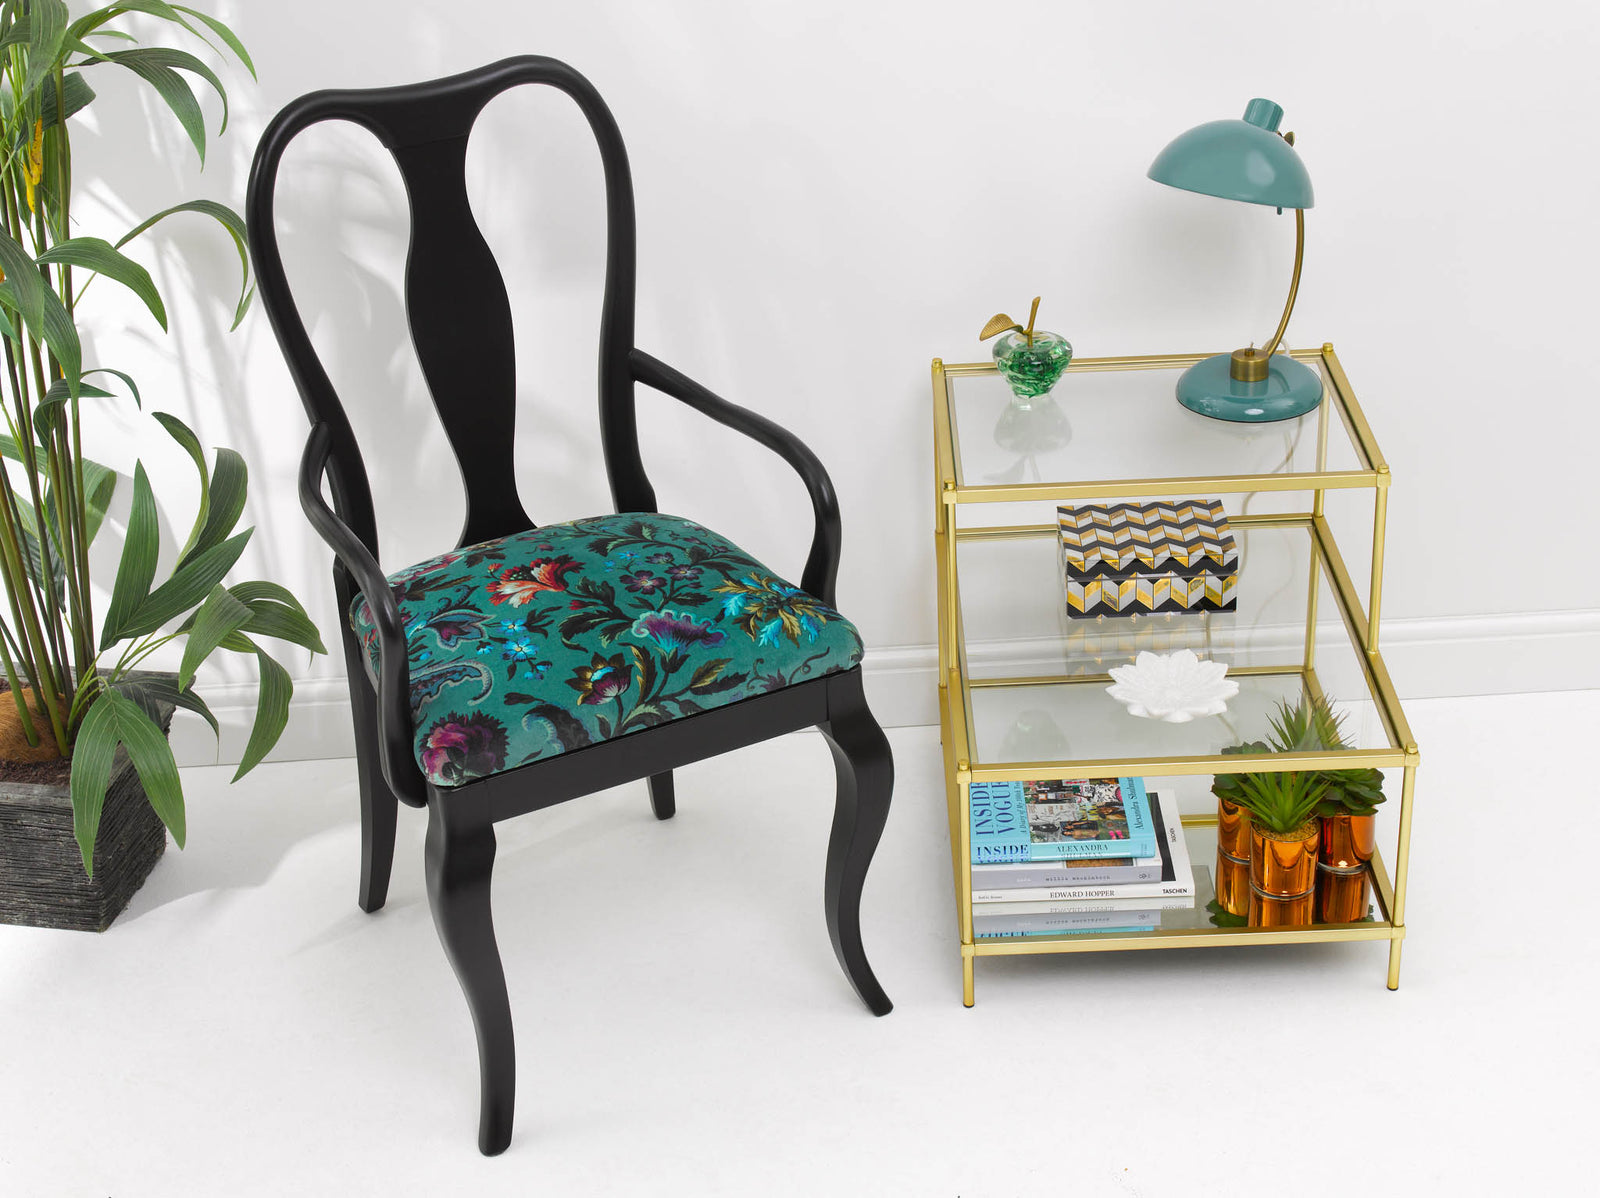 Fifi Rococo Armchair Upholstered in Florika by House of Hackney